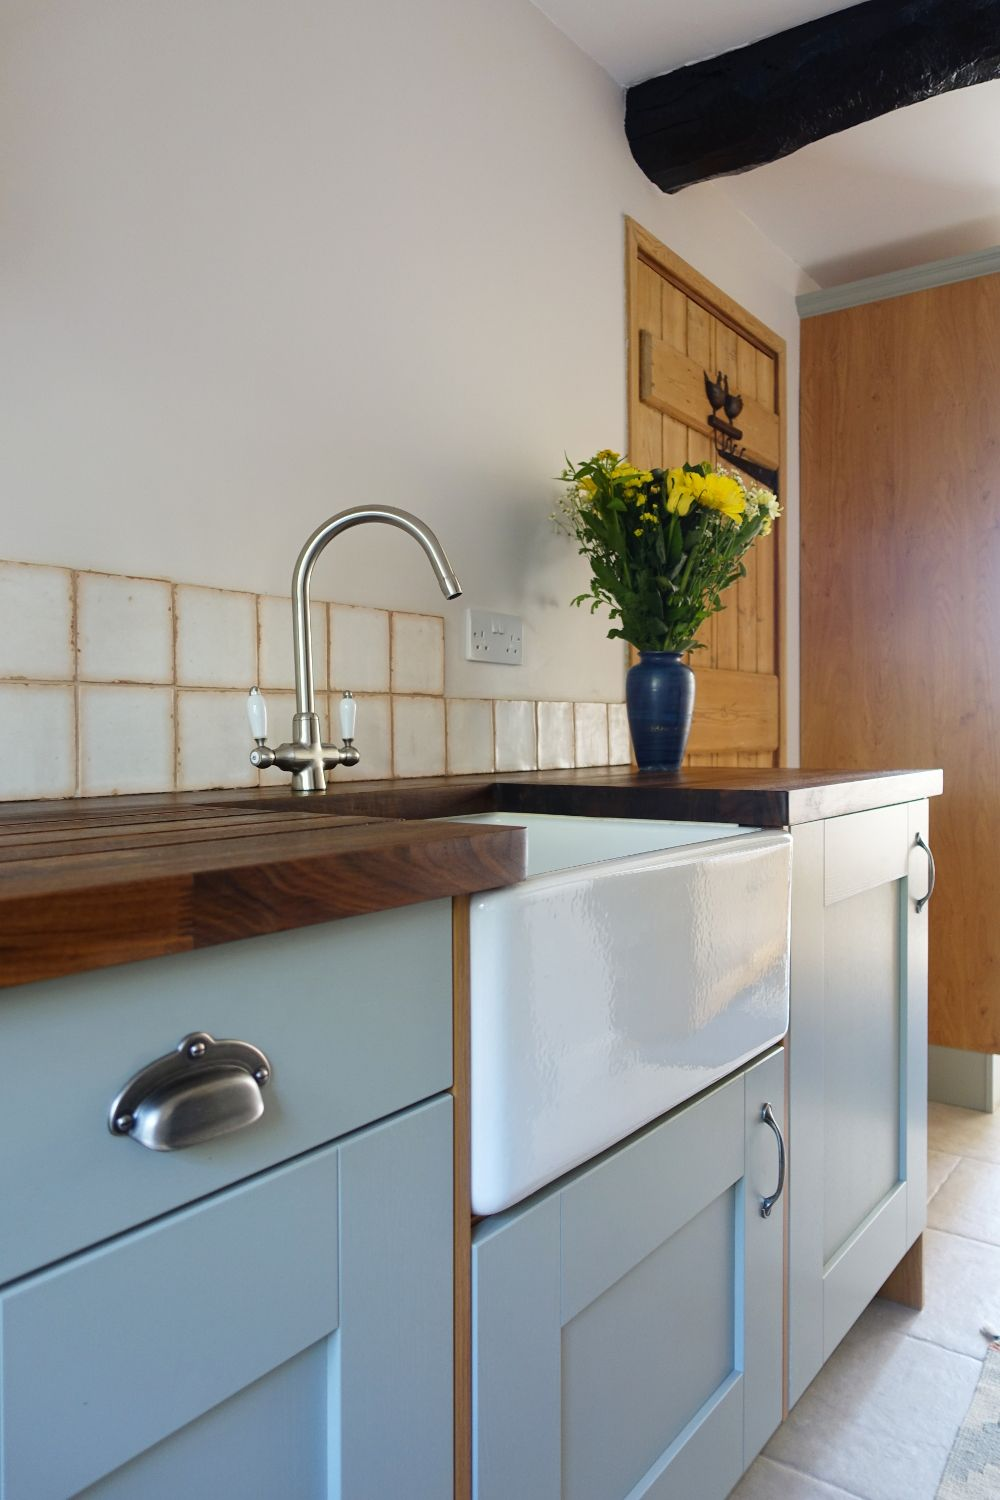 We Love This Belfast Ceramic Sink That Has Been Fitted In This